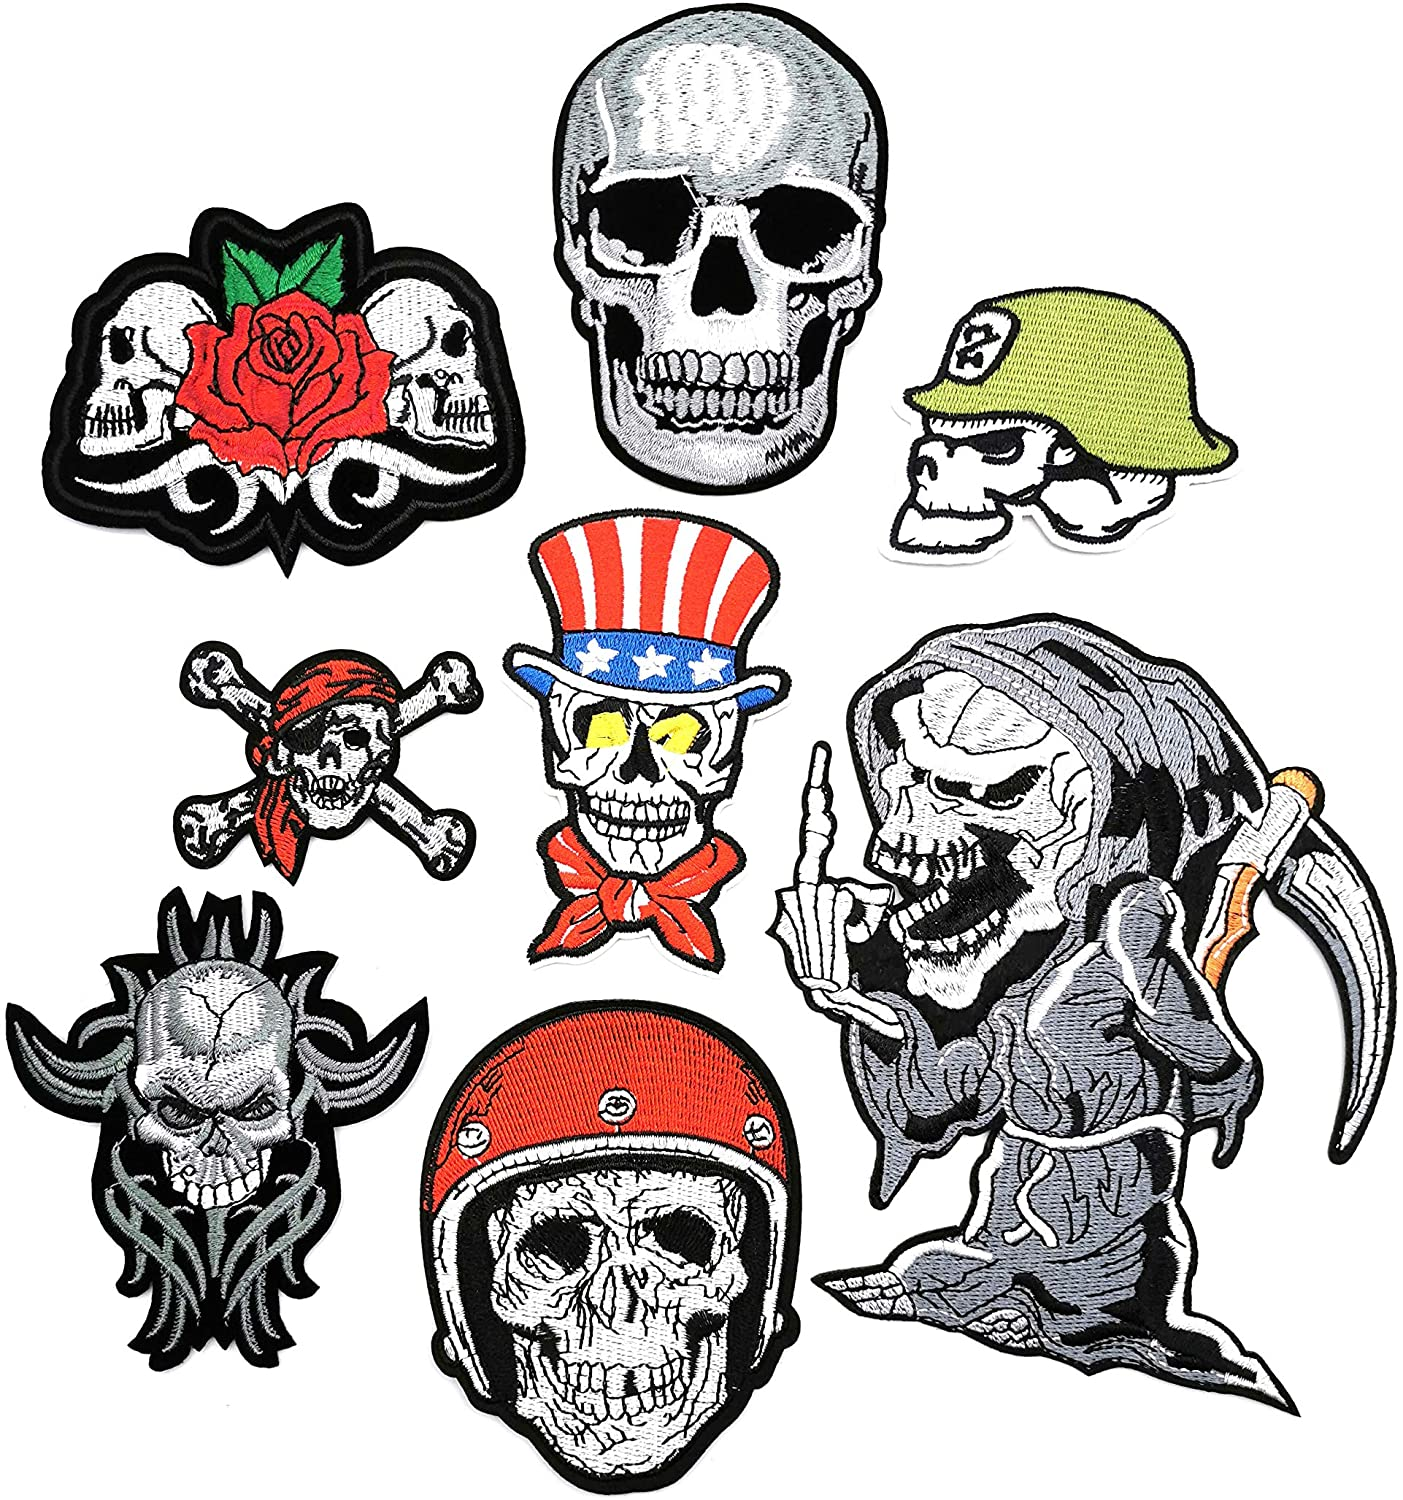 Embroidered Patch Clothes Stickers Cloth Badge DIY Applique Cloth Accessories for Popular Clothing Bag Hat Shoe Notebook, Terror Skull